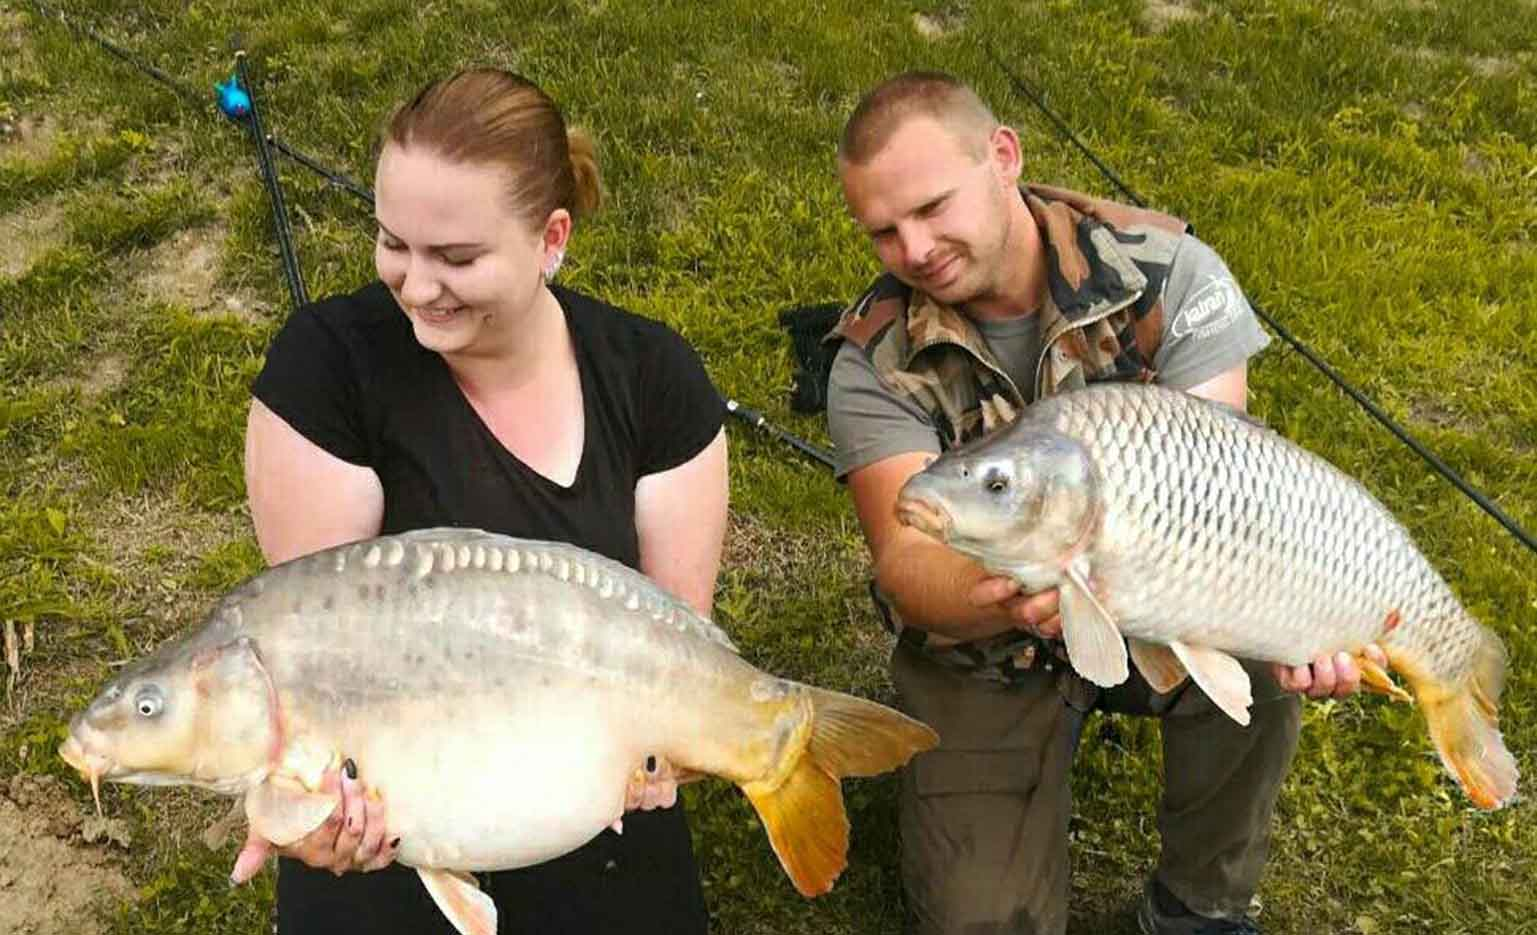 Josip Frič‎ - Field Tester - with his fiancé both fish caught using Dynamic Boilies